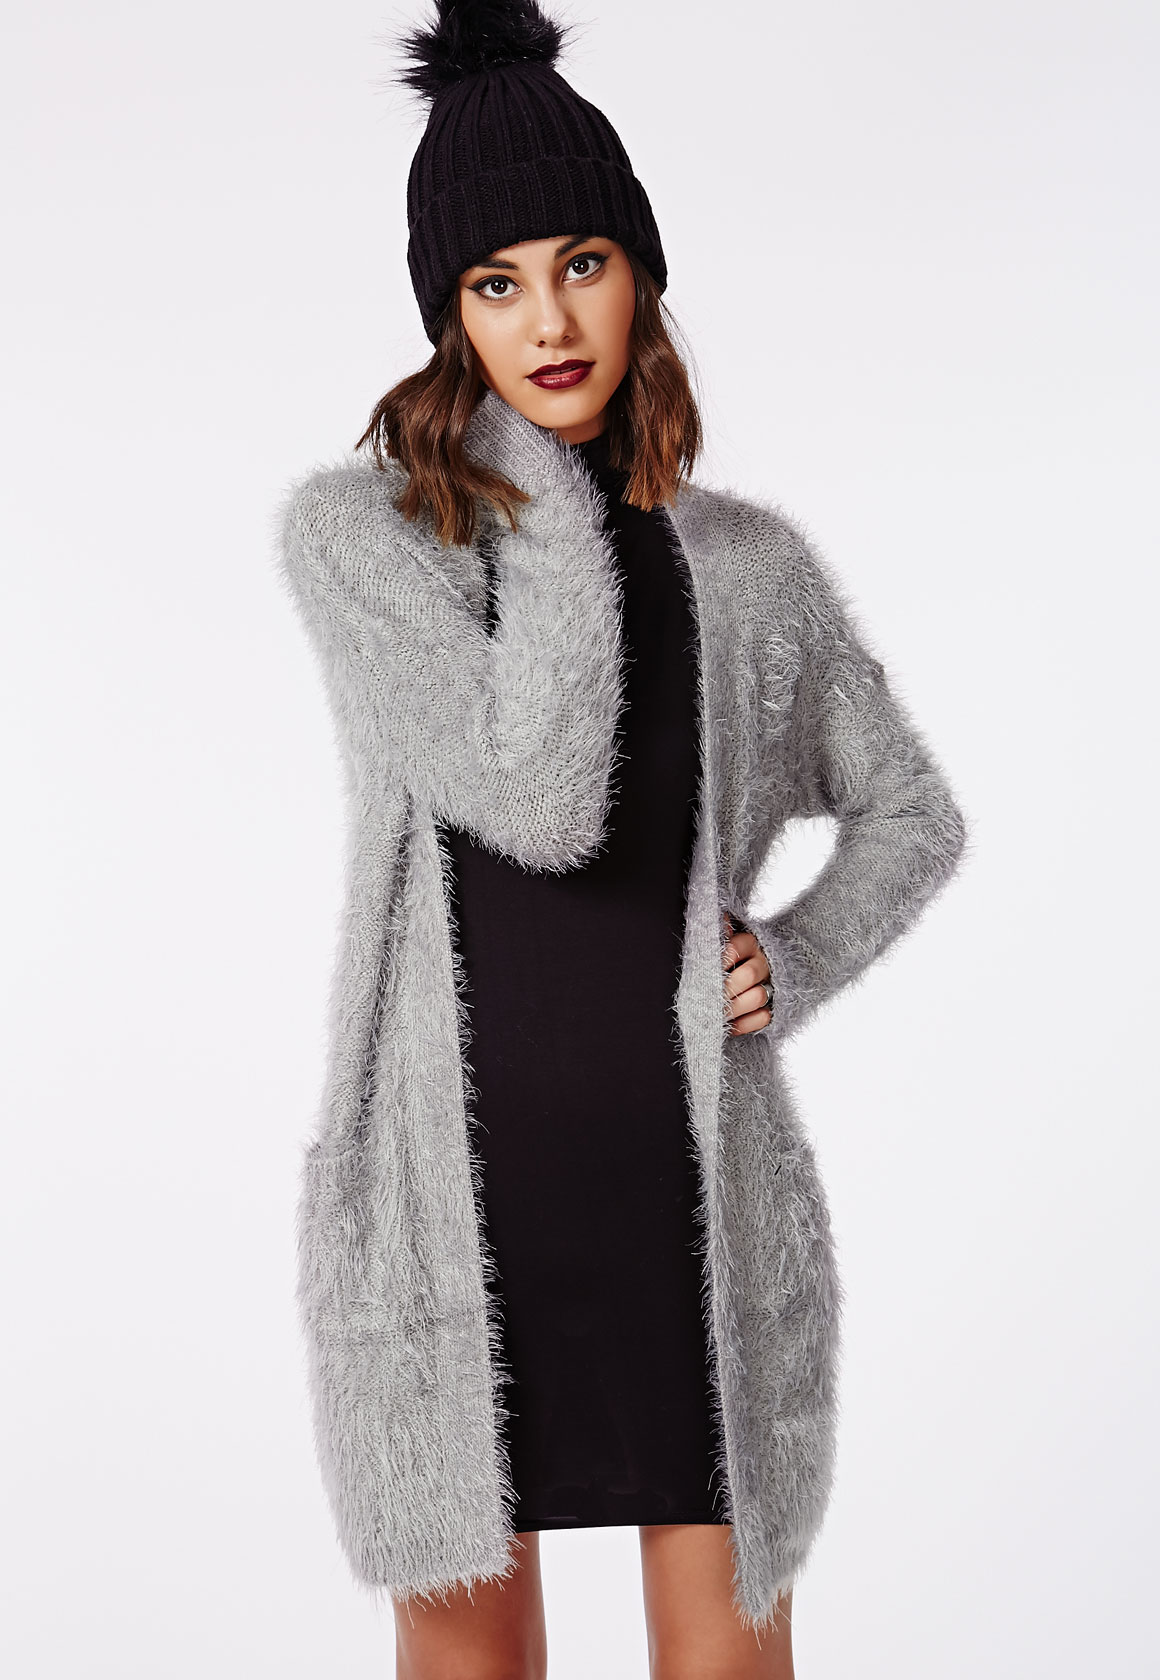 Buy women's clothing online in the UK frop top clothes shops, including: Topshop, Jigsaw, Dorothy Perkins, Debenhams, Warehouse, Principles, Next, Evans, Hennes.